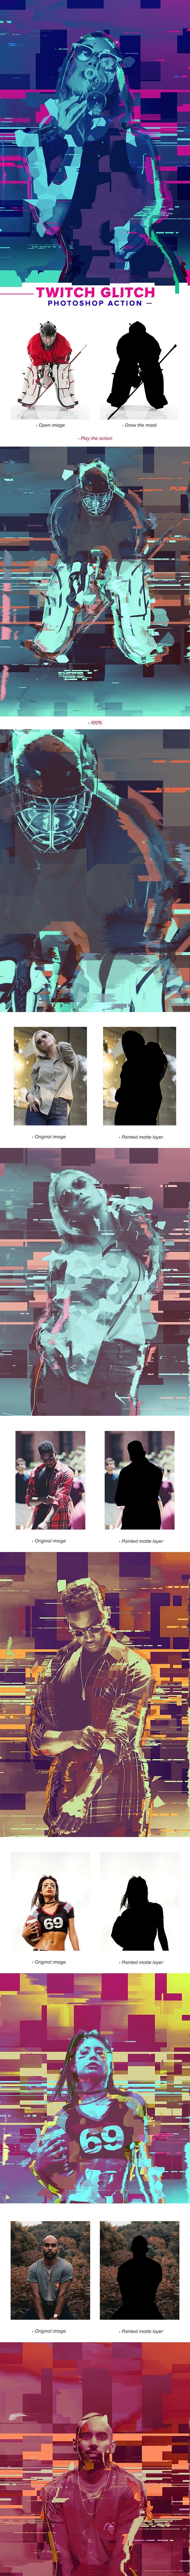 Twitch Glitch Photoshop Action - Photo Effects Actions